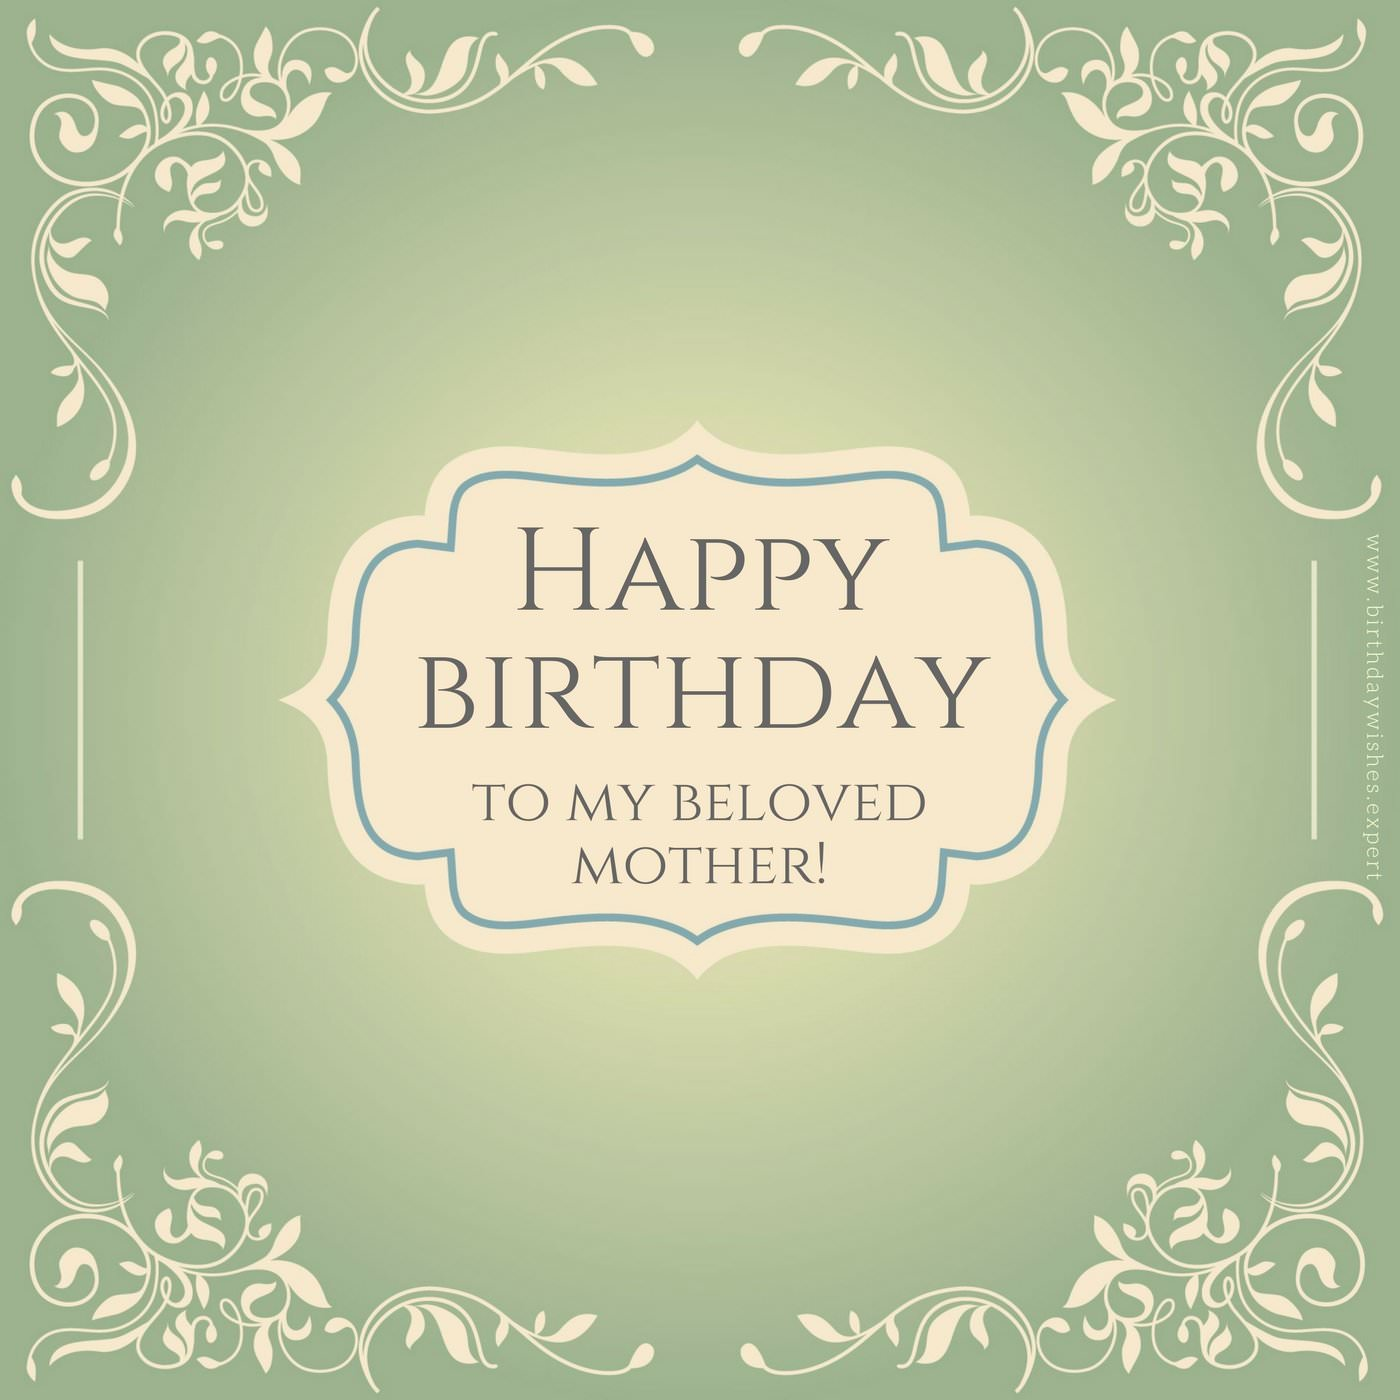 Best mom in the world birthday wishes for your mother happy birthday to my beloved mother m4hsunfo